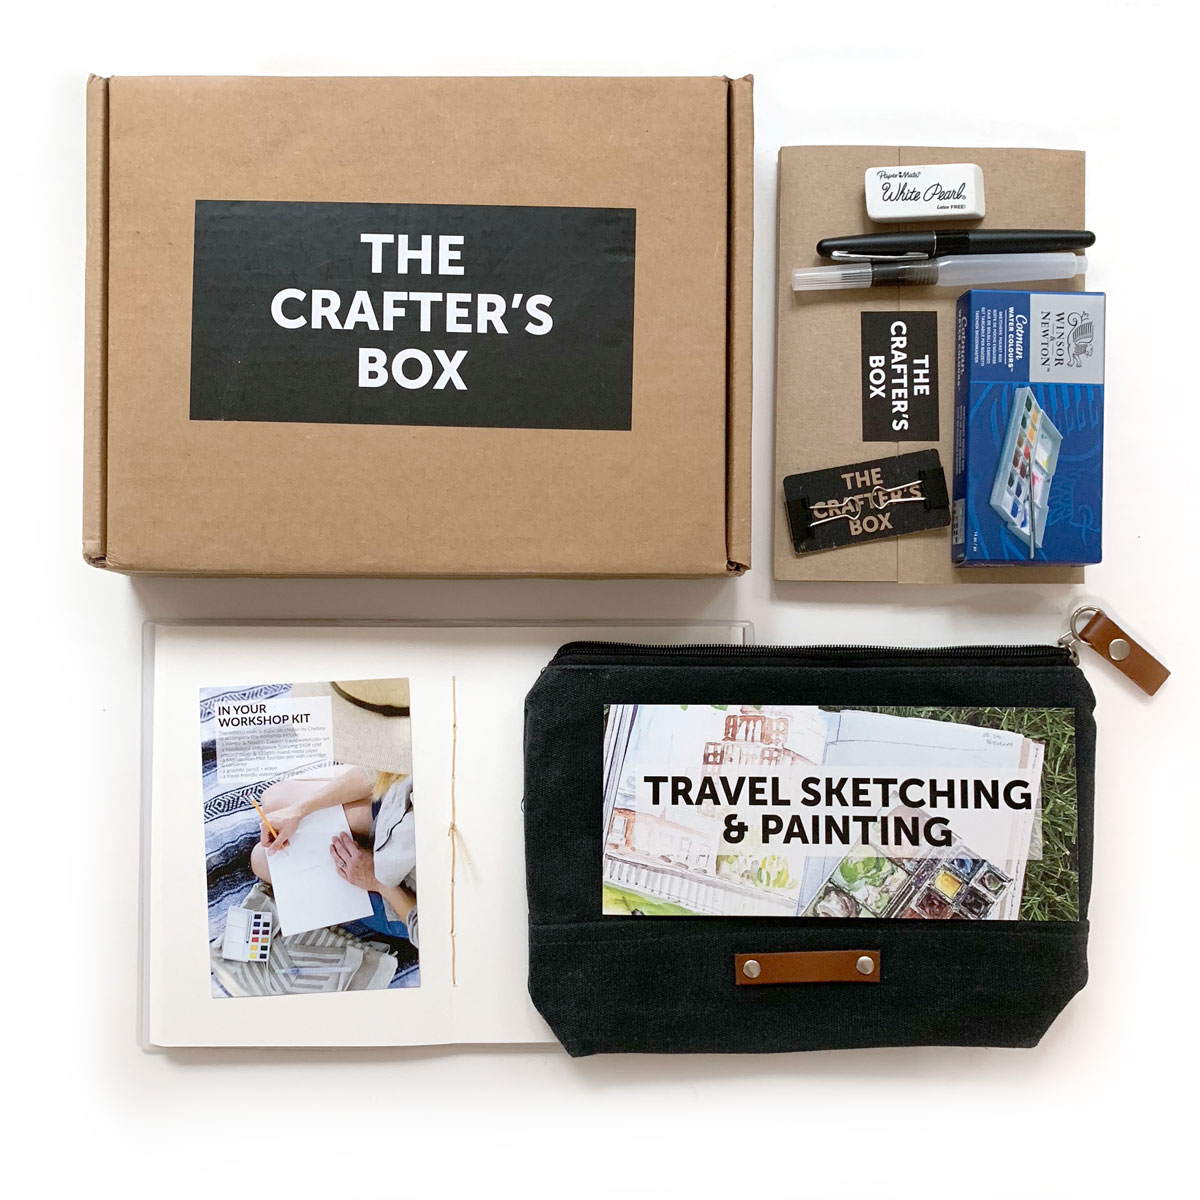 The Crafter's Box:  I added this subscription to my list last winter with a candlemaking workshop and have discovered several new artists and mediums since then. The kits come with video lessons by the featured experts and include everything you need to complete the project as curated by them. The perfect way to discover new crafts and hobbies!